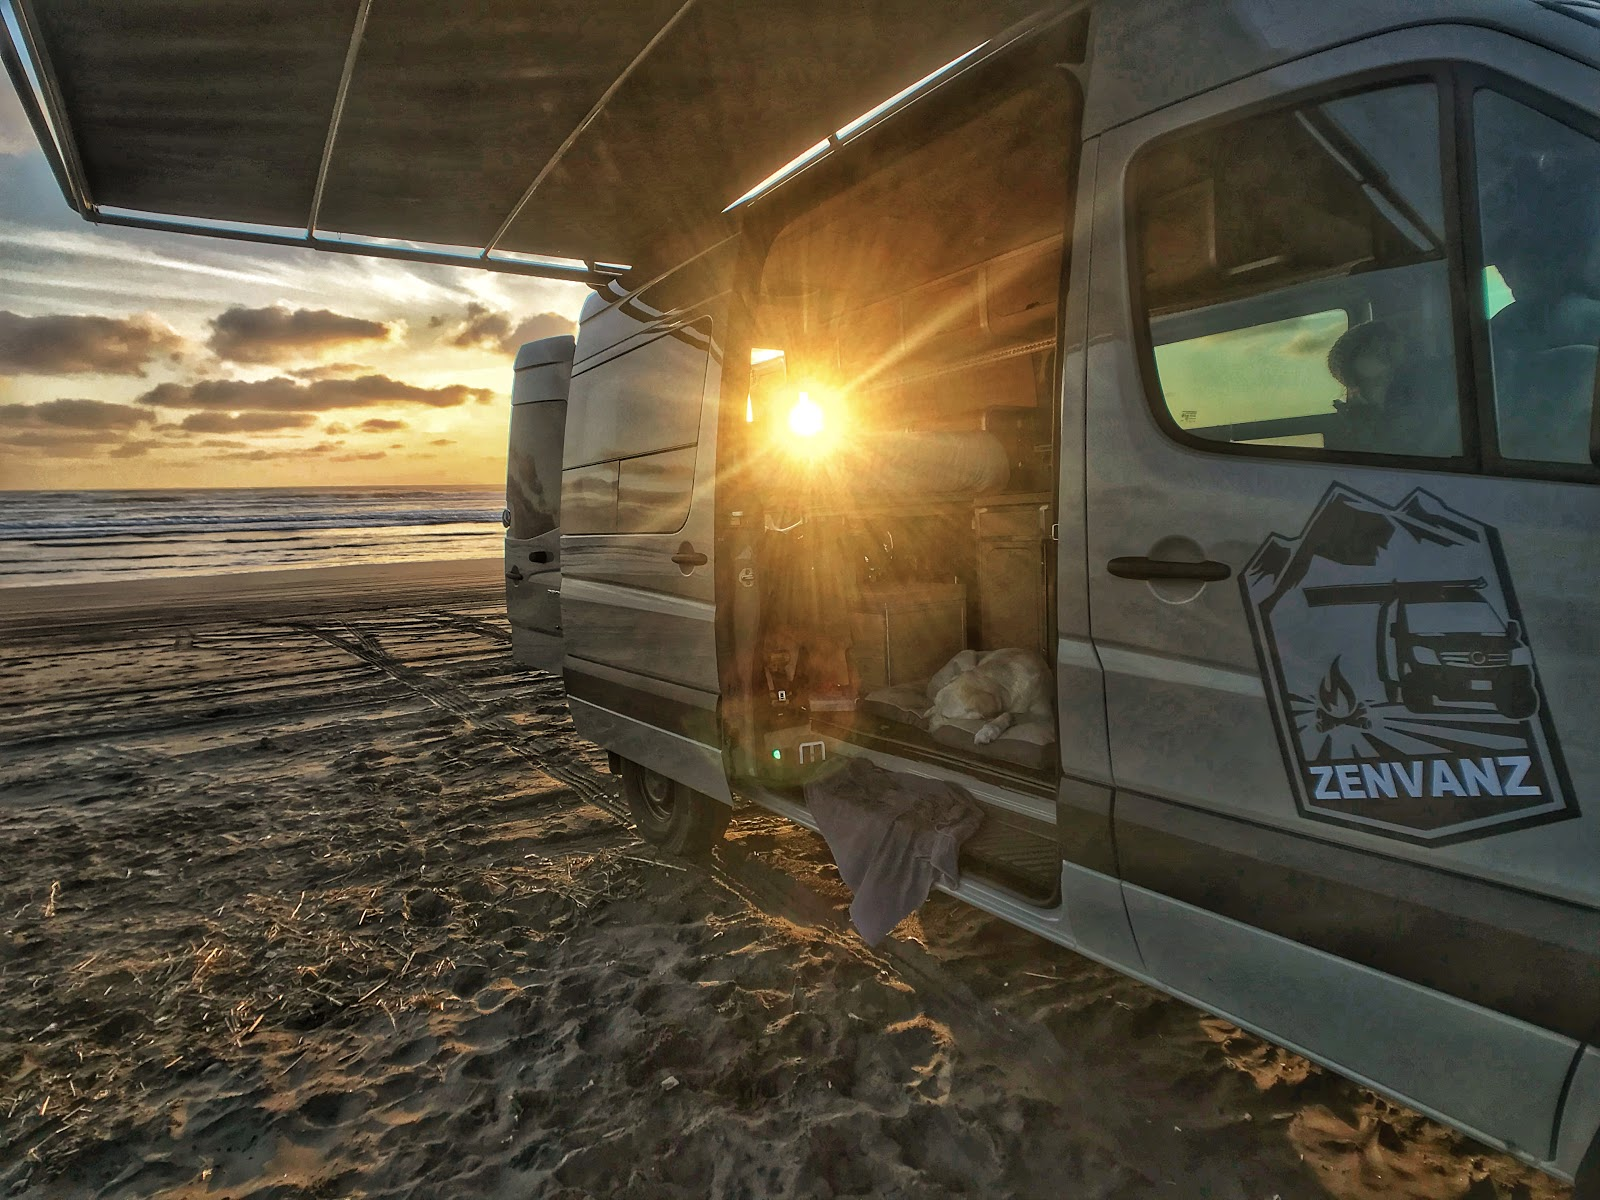 how-we-started-a-8k-month-business-transforming-campervans-while-traveling